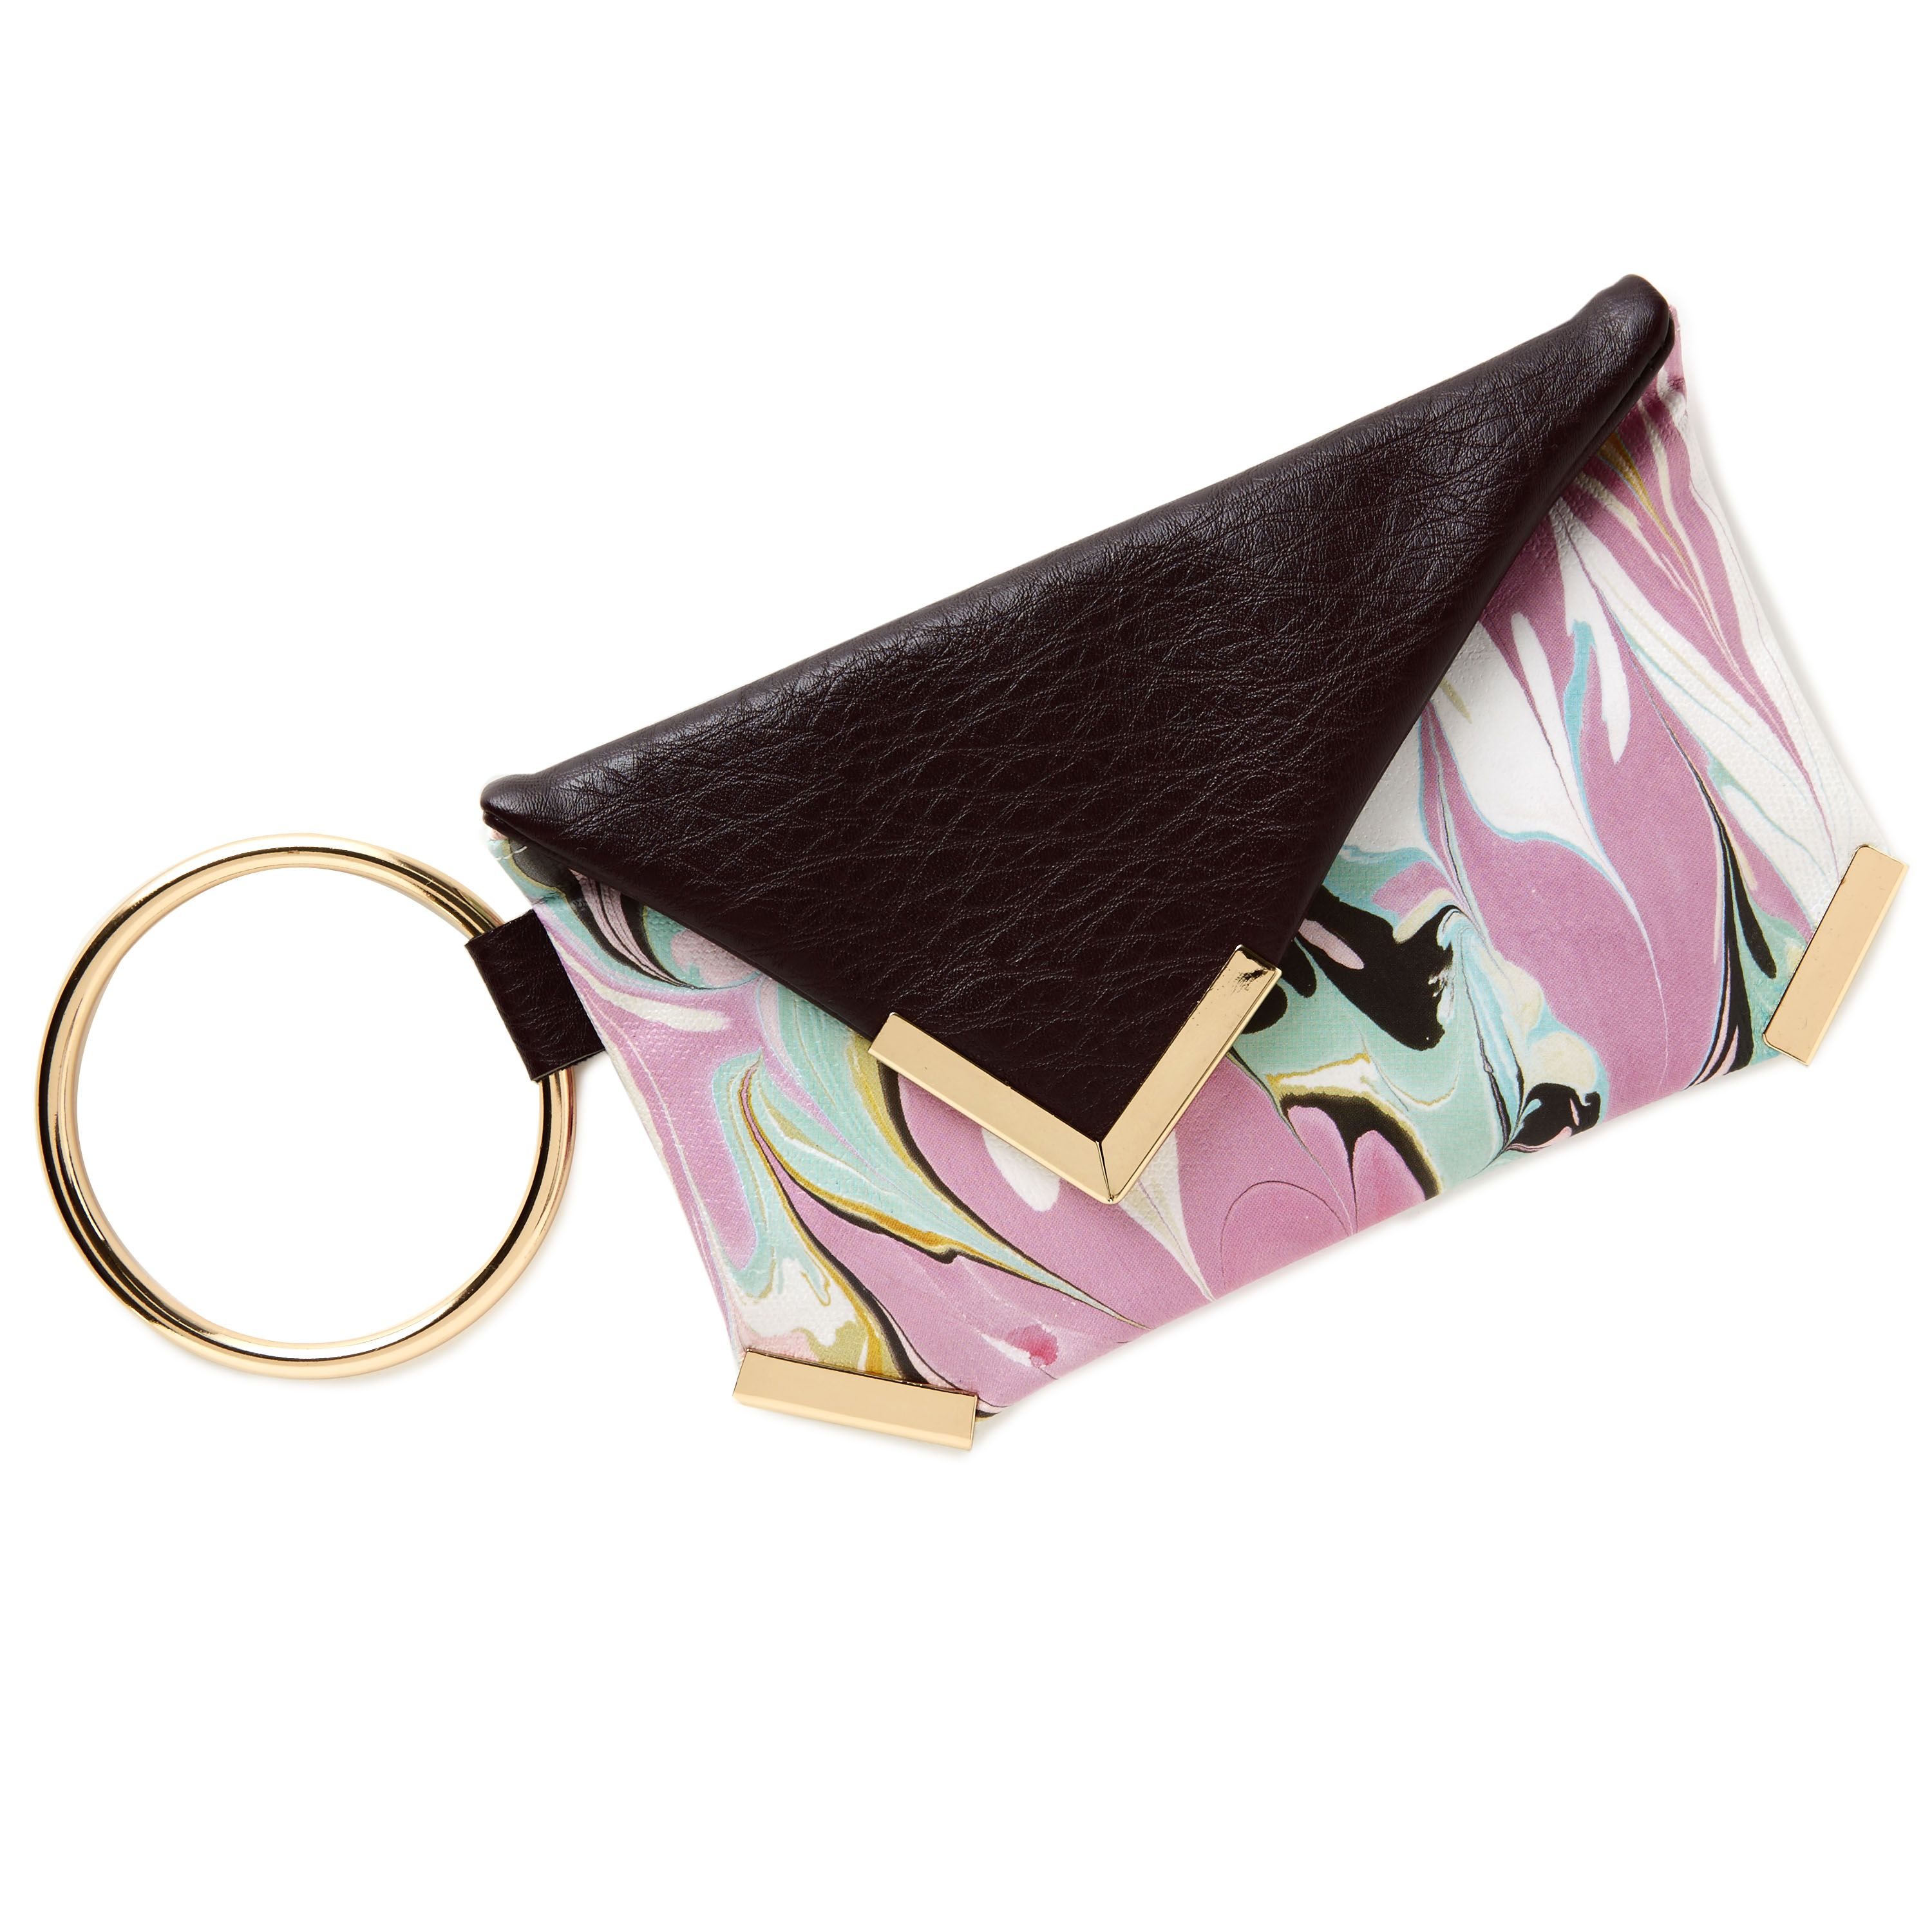 Date night must have. Marble designed wrist purse with large metal ring, holds all the little essentials. $19.95